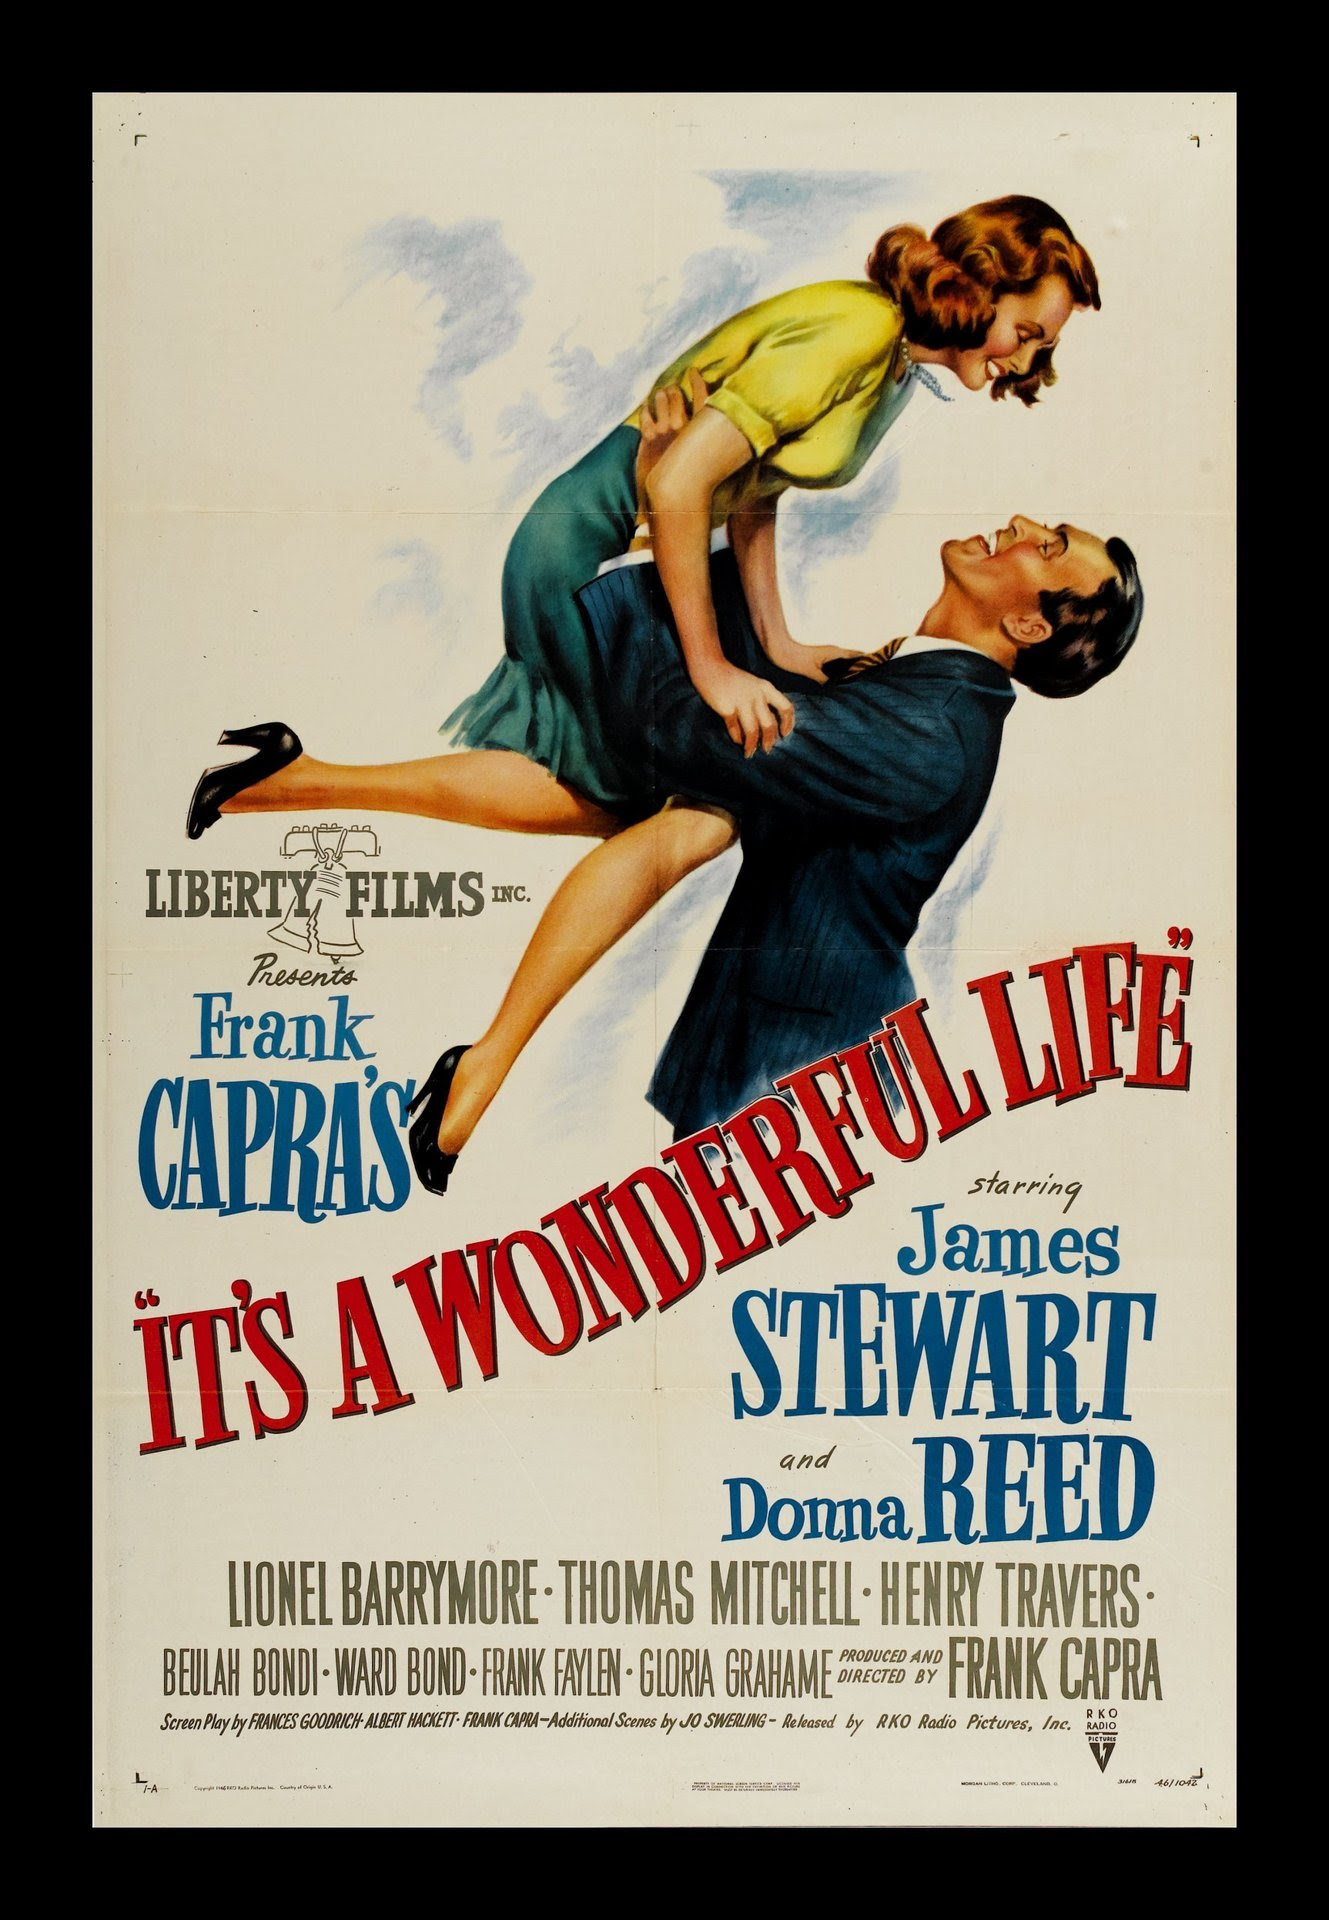 http://ethicsalarms.files.wordpress.com/2011/12/its-a-wonderful-life-its-a-wonderful-life.jpg